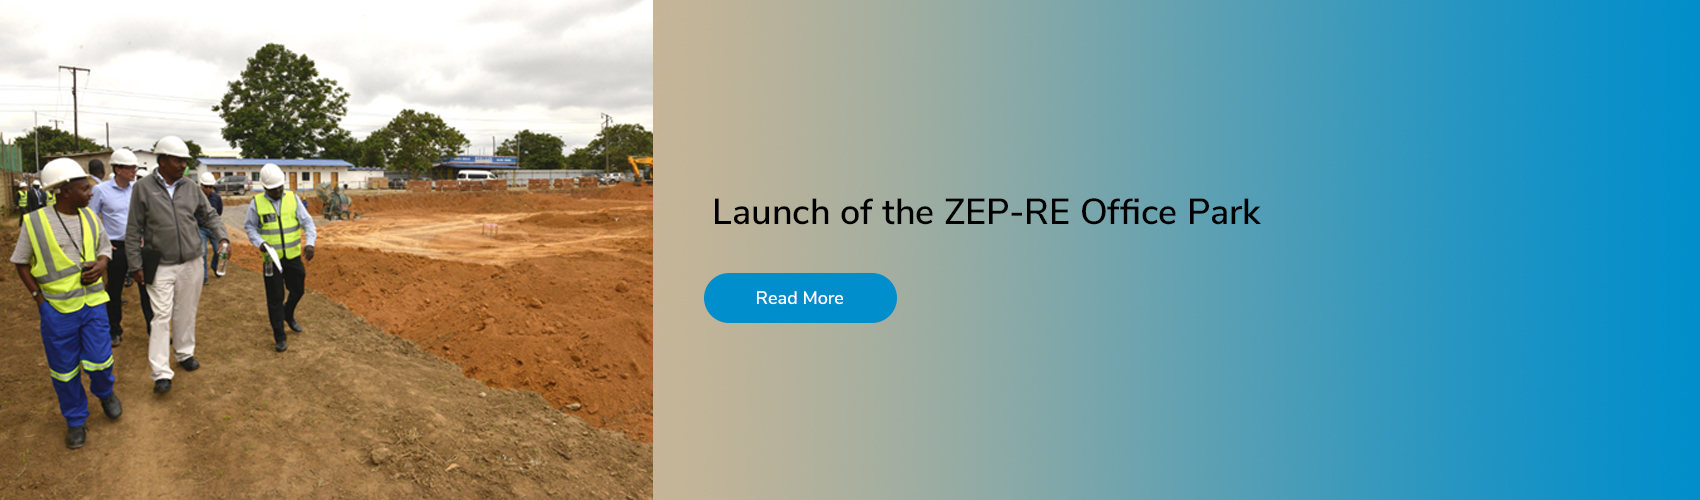 Launch of the ZEP-RE Office Park